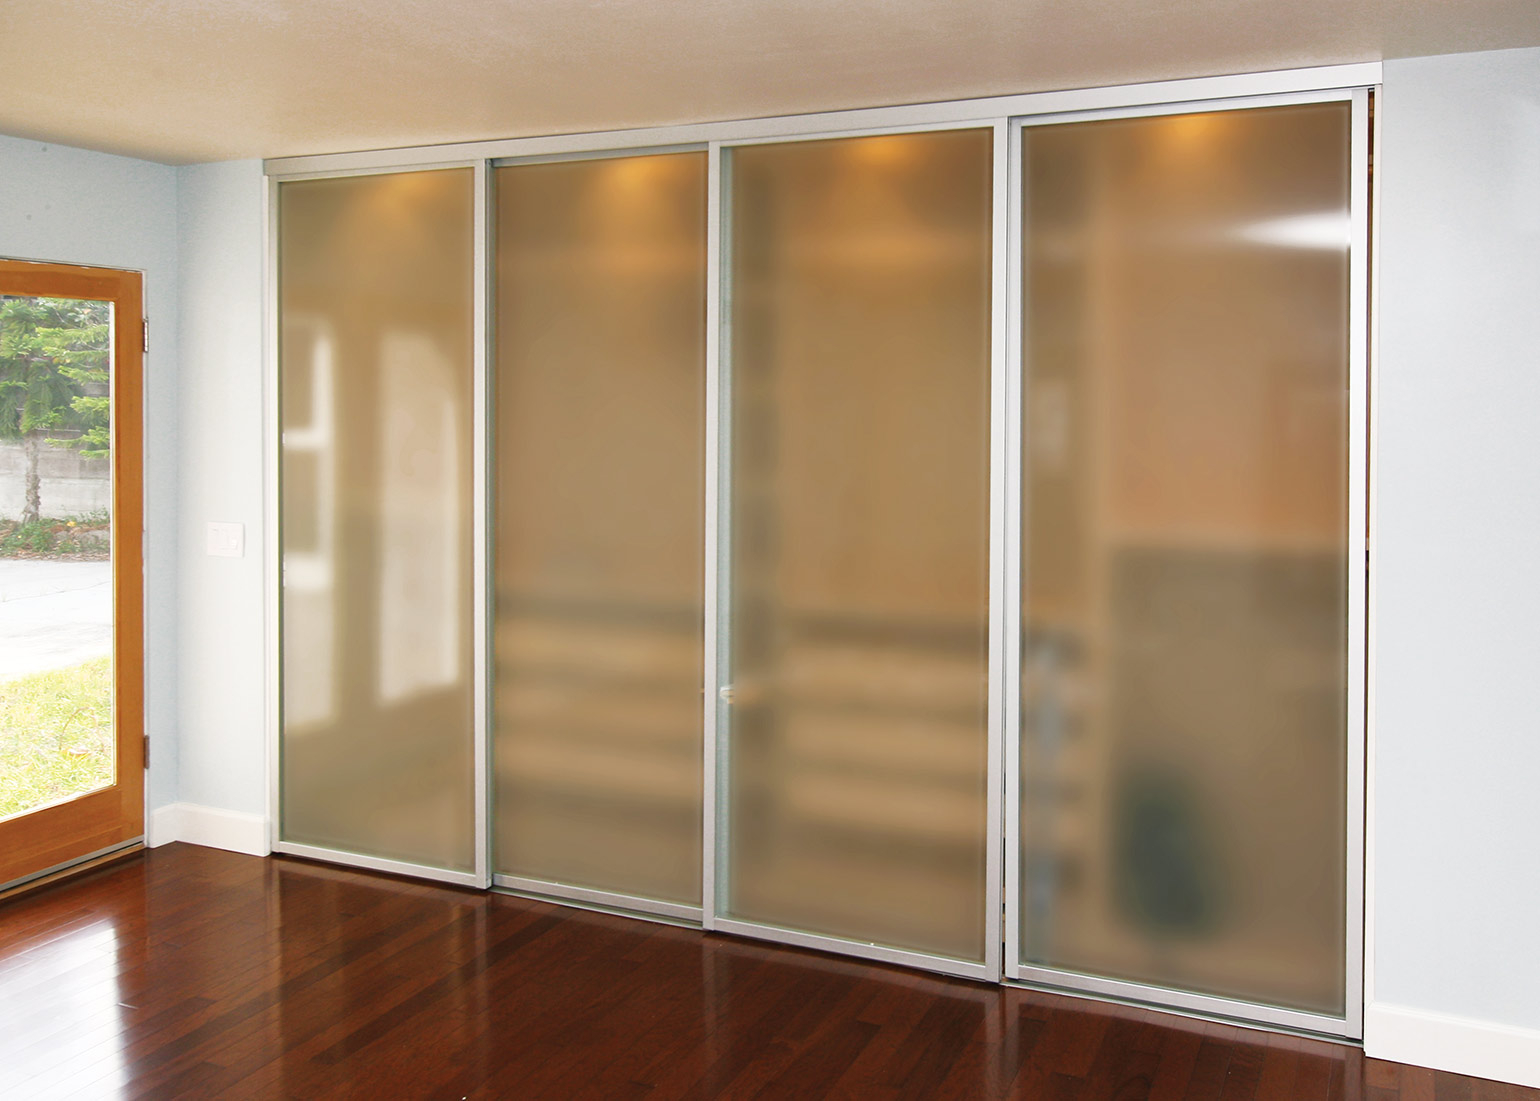 Frosted Glass Sliding Closet Doors With Silver Frame Inspirational inside proportions 1540 X 1101